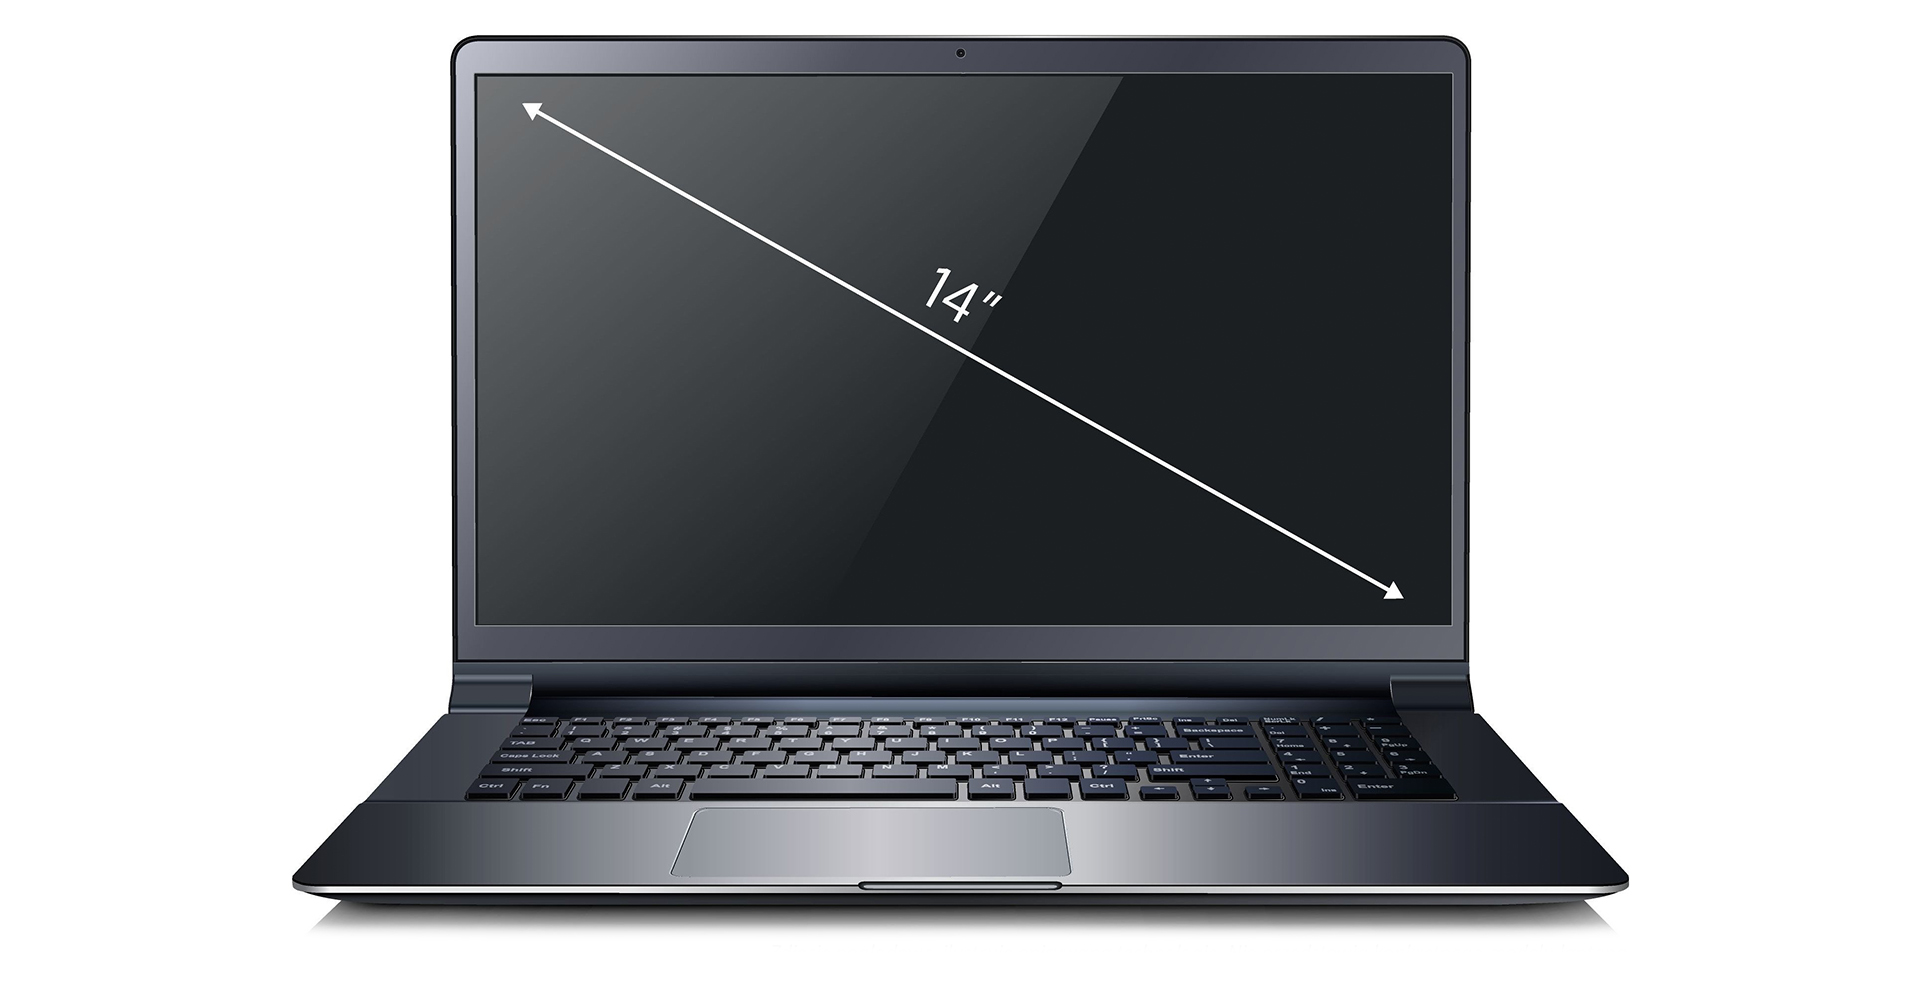 Dell Inspiron 5480 (5480-6977)                             14 collas pa diagonāli